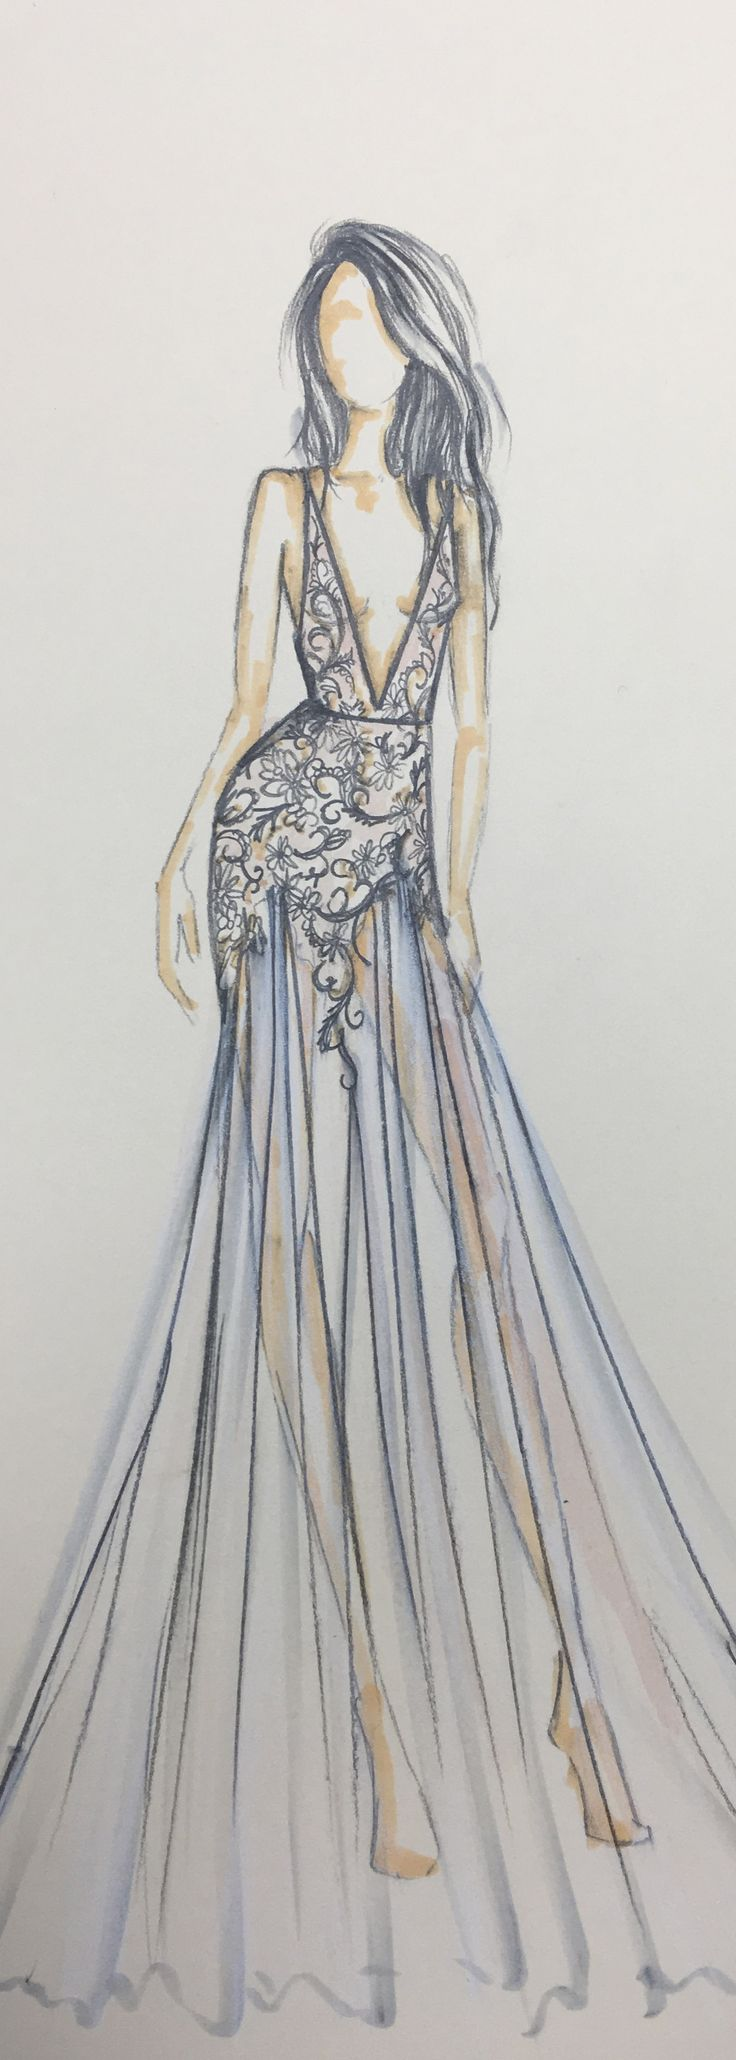 Amazing fashion drawings of dresses